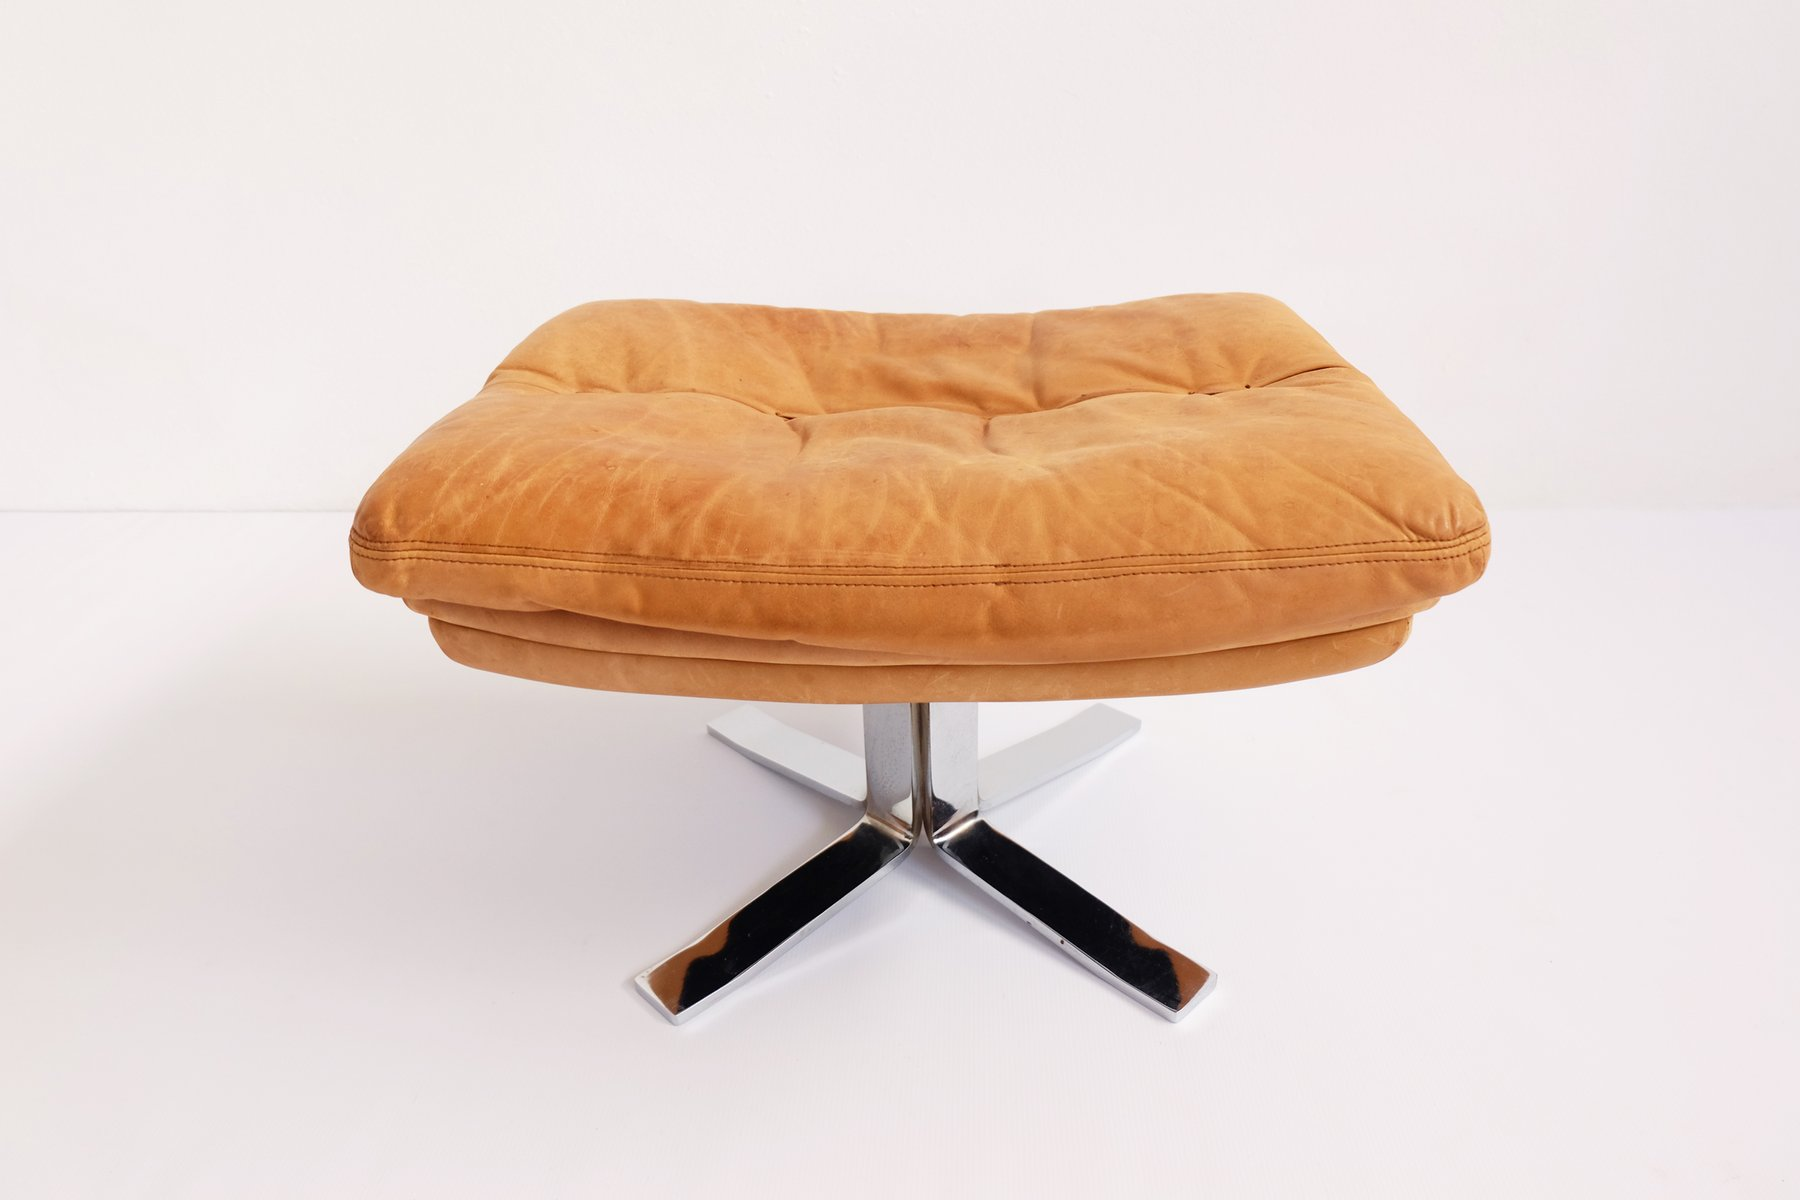 Swiss Leather Stool 1960s : brown leather stool - islam-shia.org